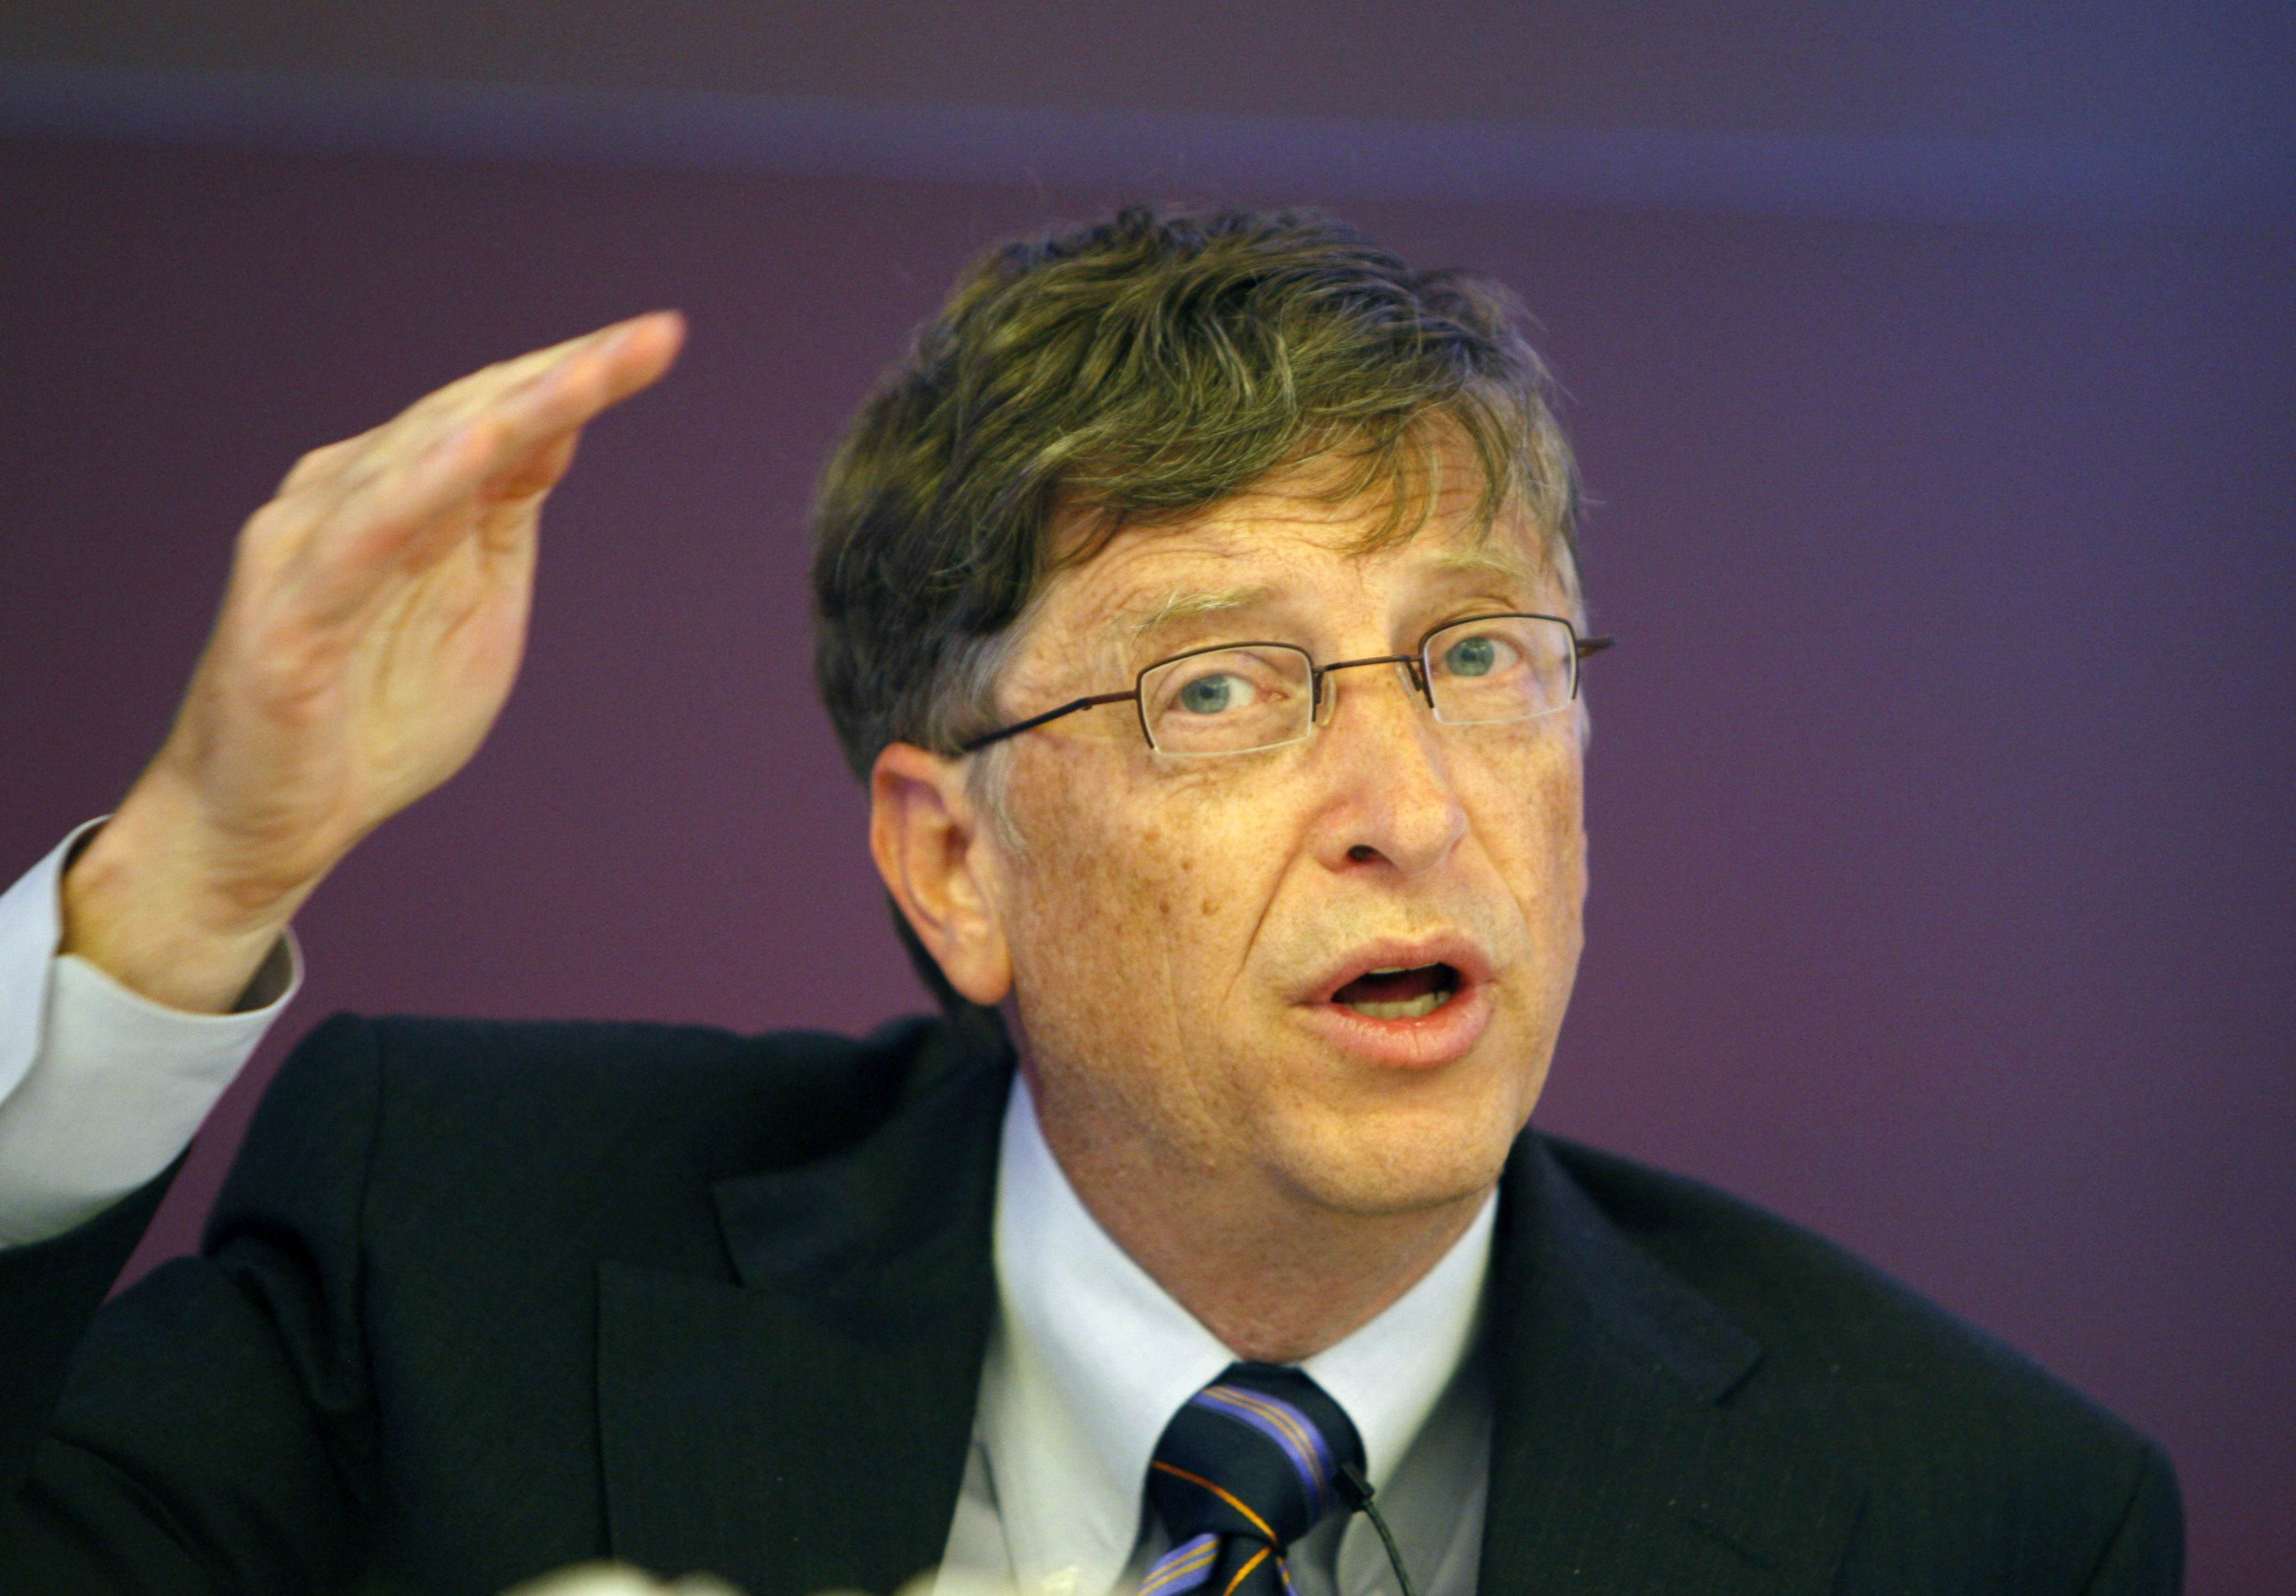 PA 6523057 Bill Gates Sounds Like An Absolute Nightmare Boss